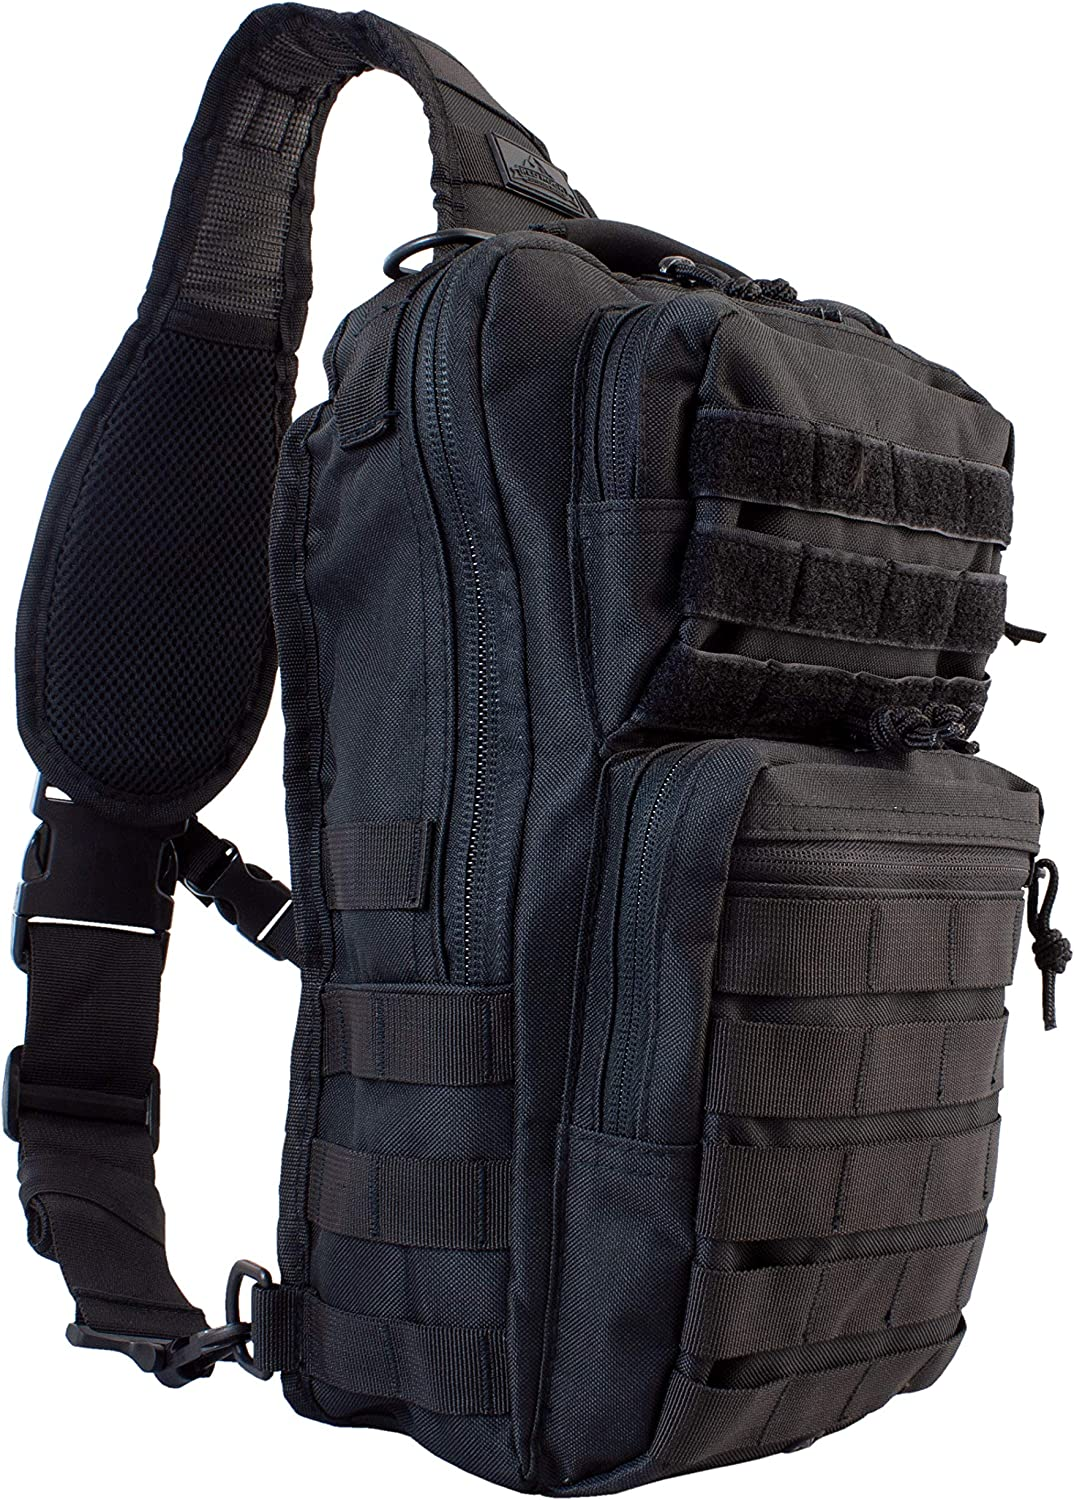 Red Rock Outdoor Gear Large Rover Sling Pack